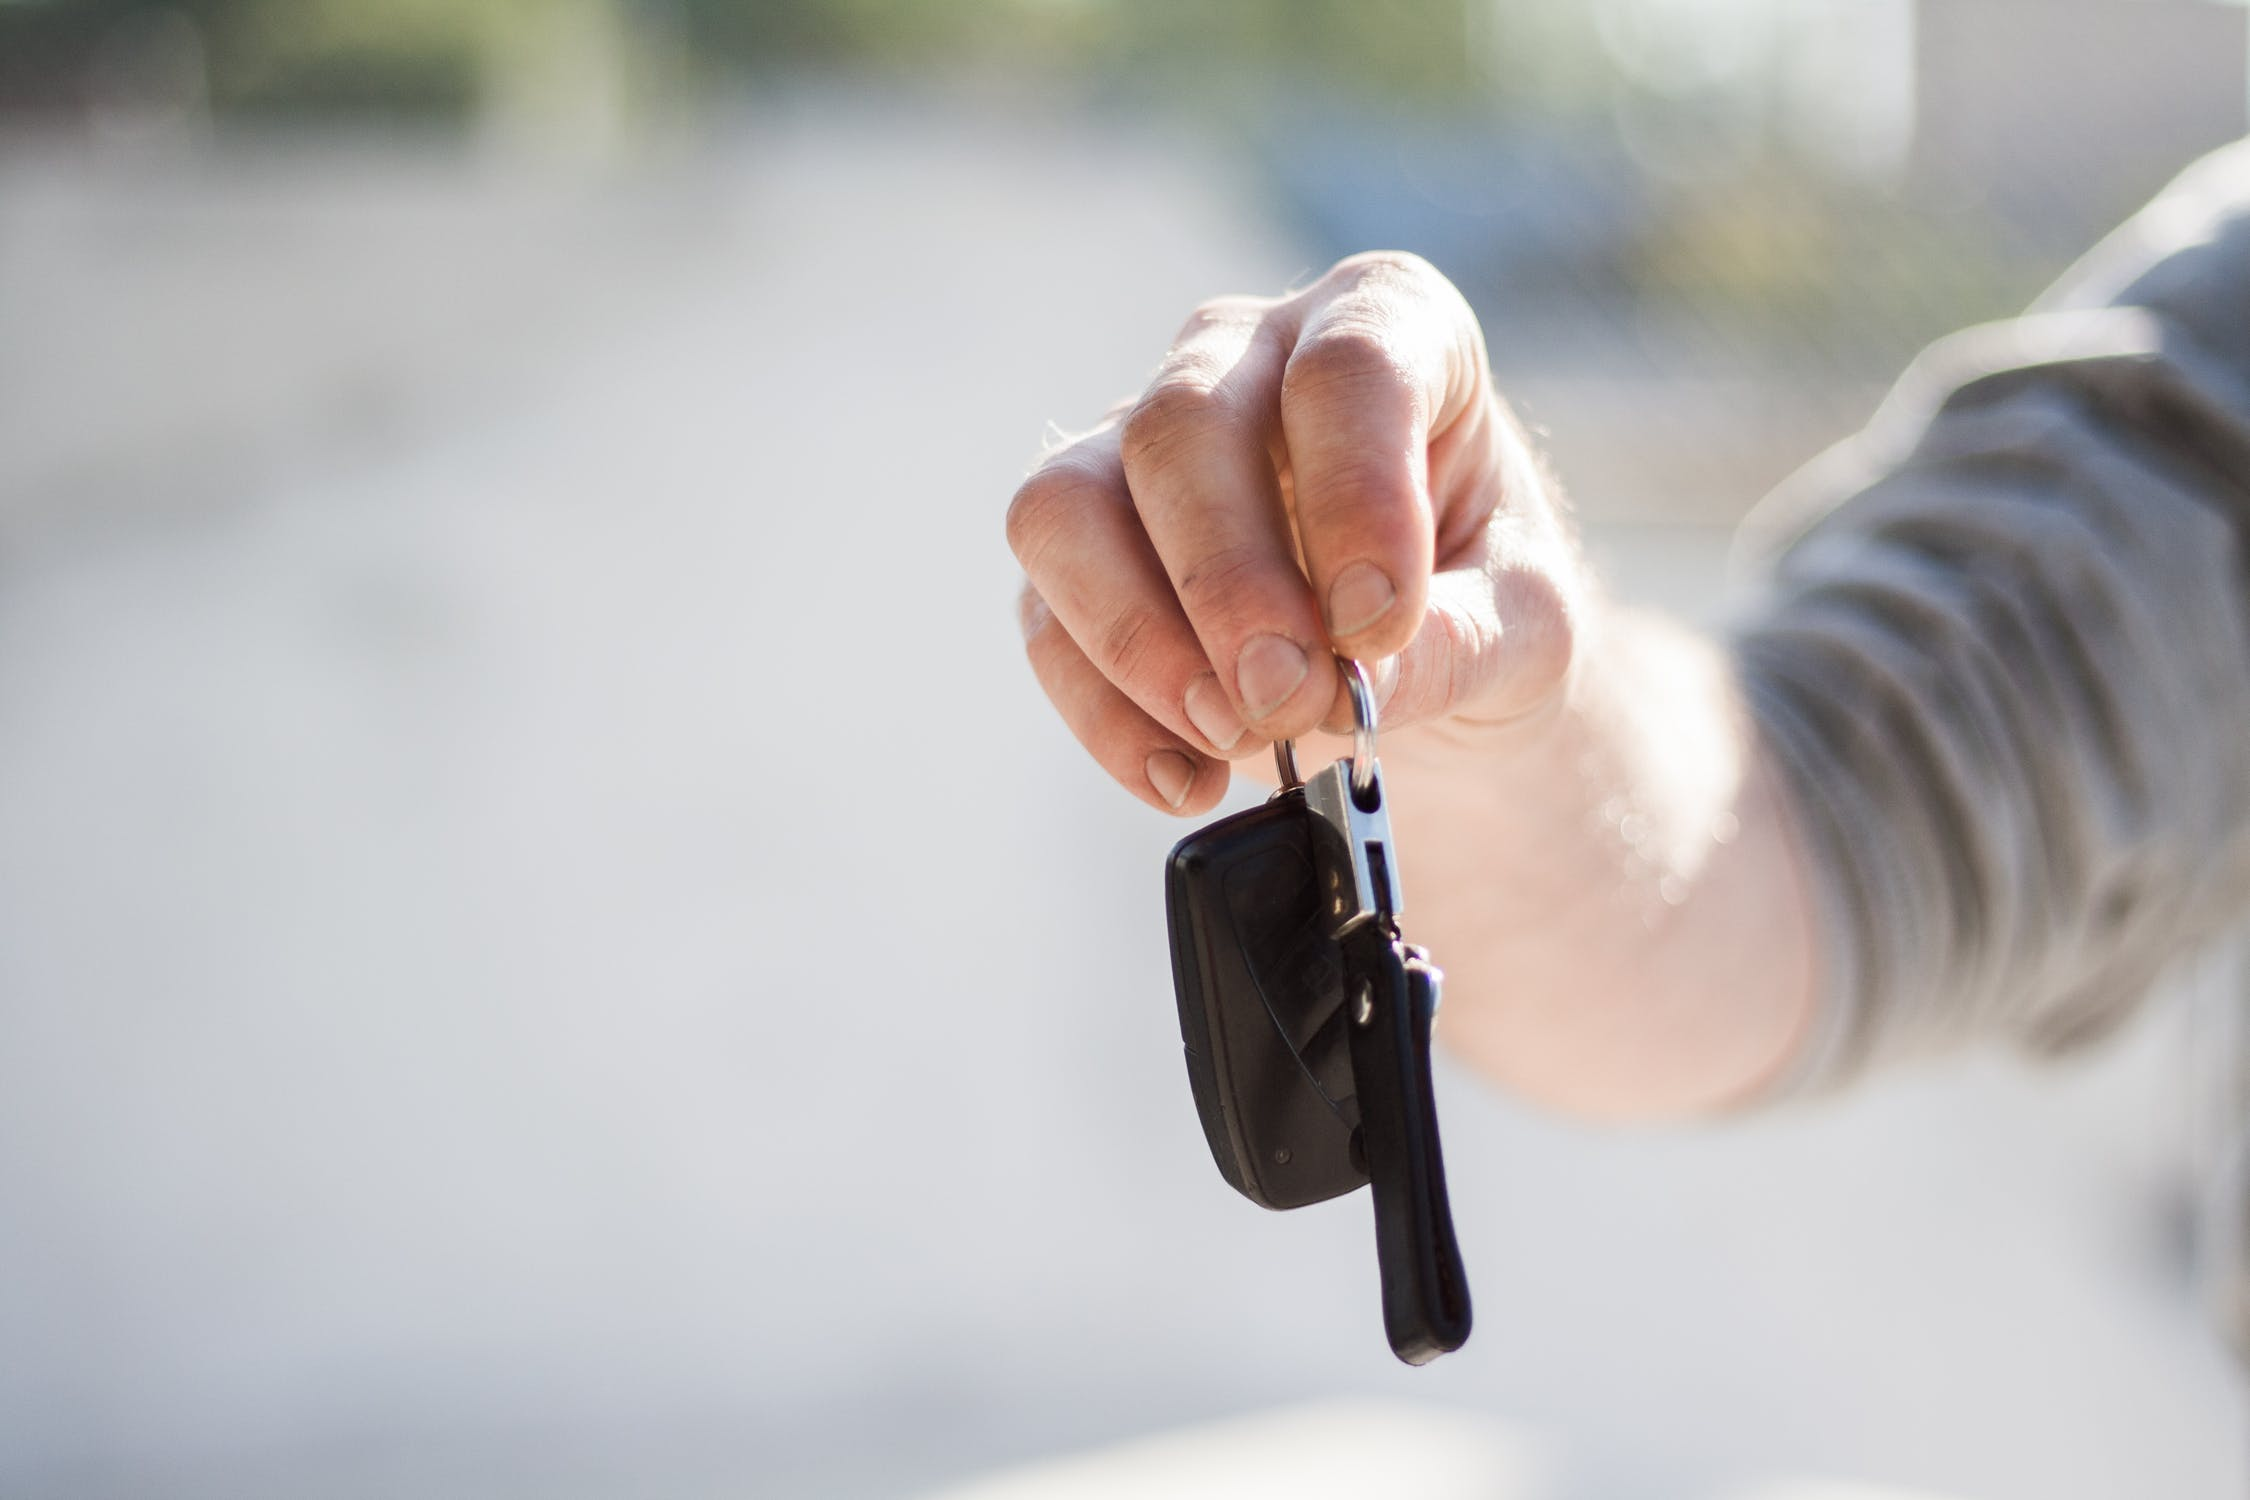 Useful tips on how to photograph your car before selling it